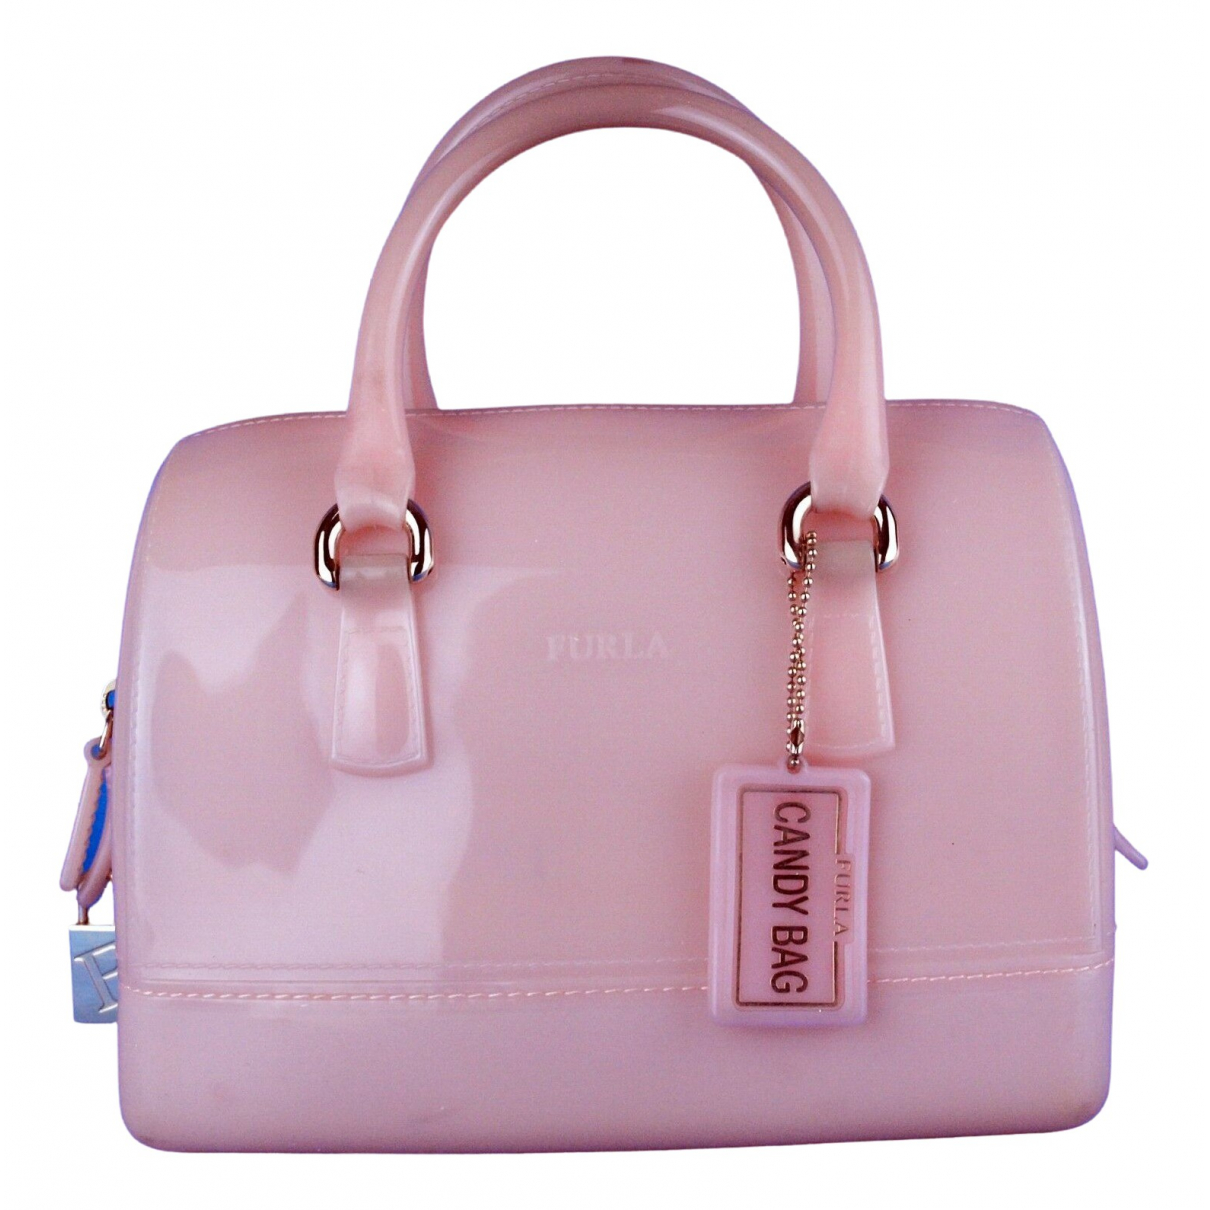 Furla \N Leather handbag for Women \N